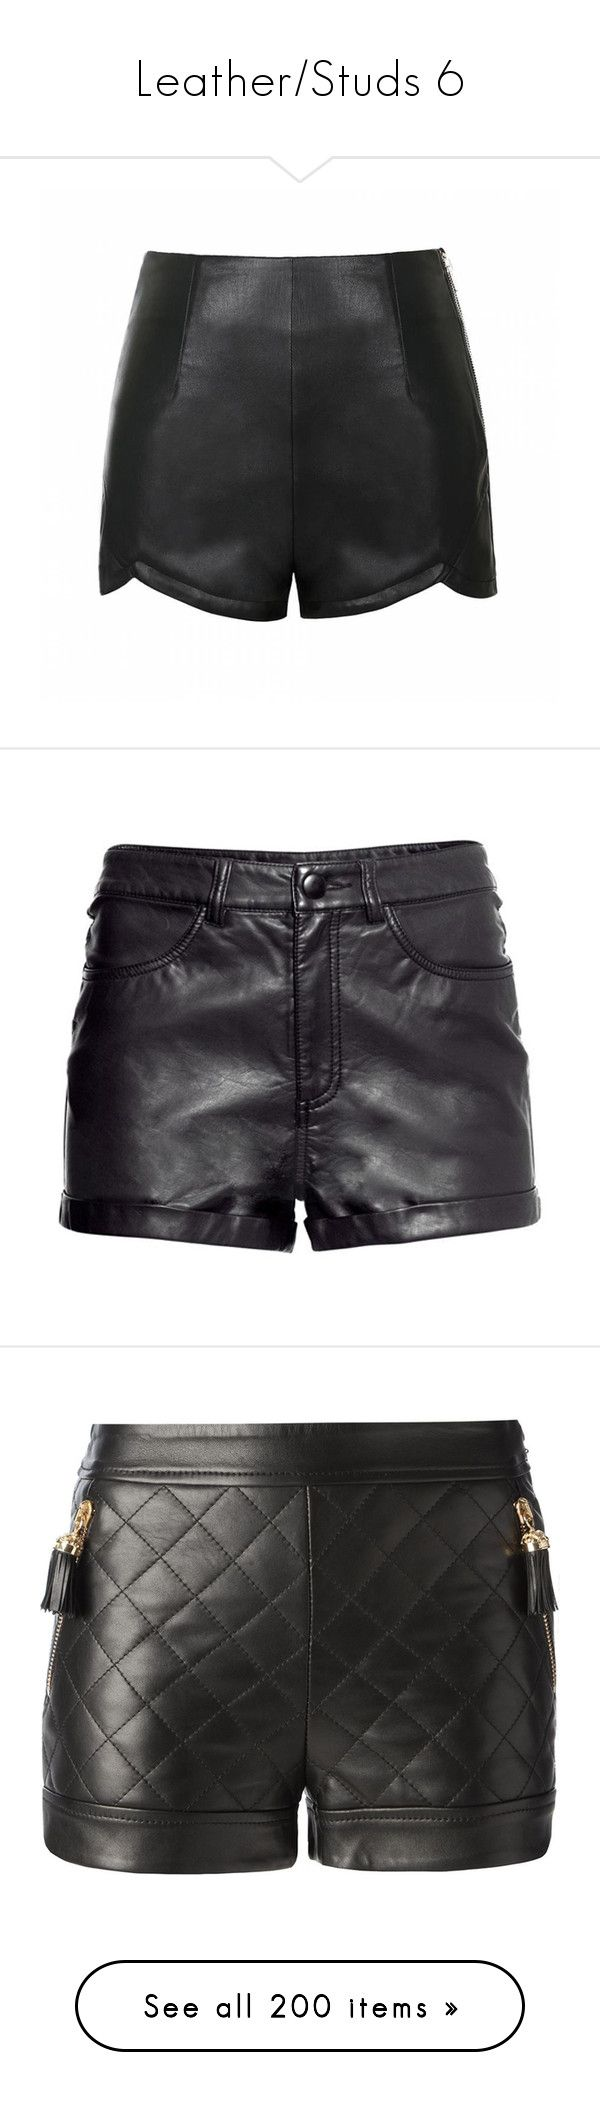 """""""Leather/Studs 6"""" by cecilia-acosta ❤ liked on Polyvore featuring shorts, bottoms, short, pants, black, high waisted short shorts, leather look shorts, high rise shorts, highwaist shorts and high waisted faux leather shorts"""